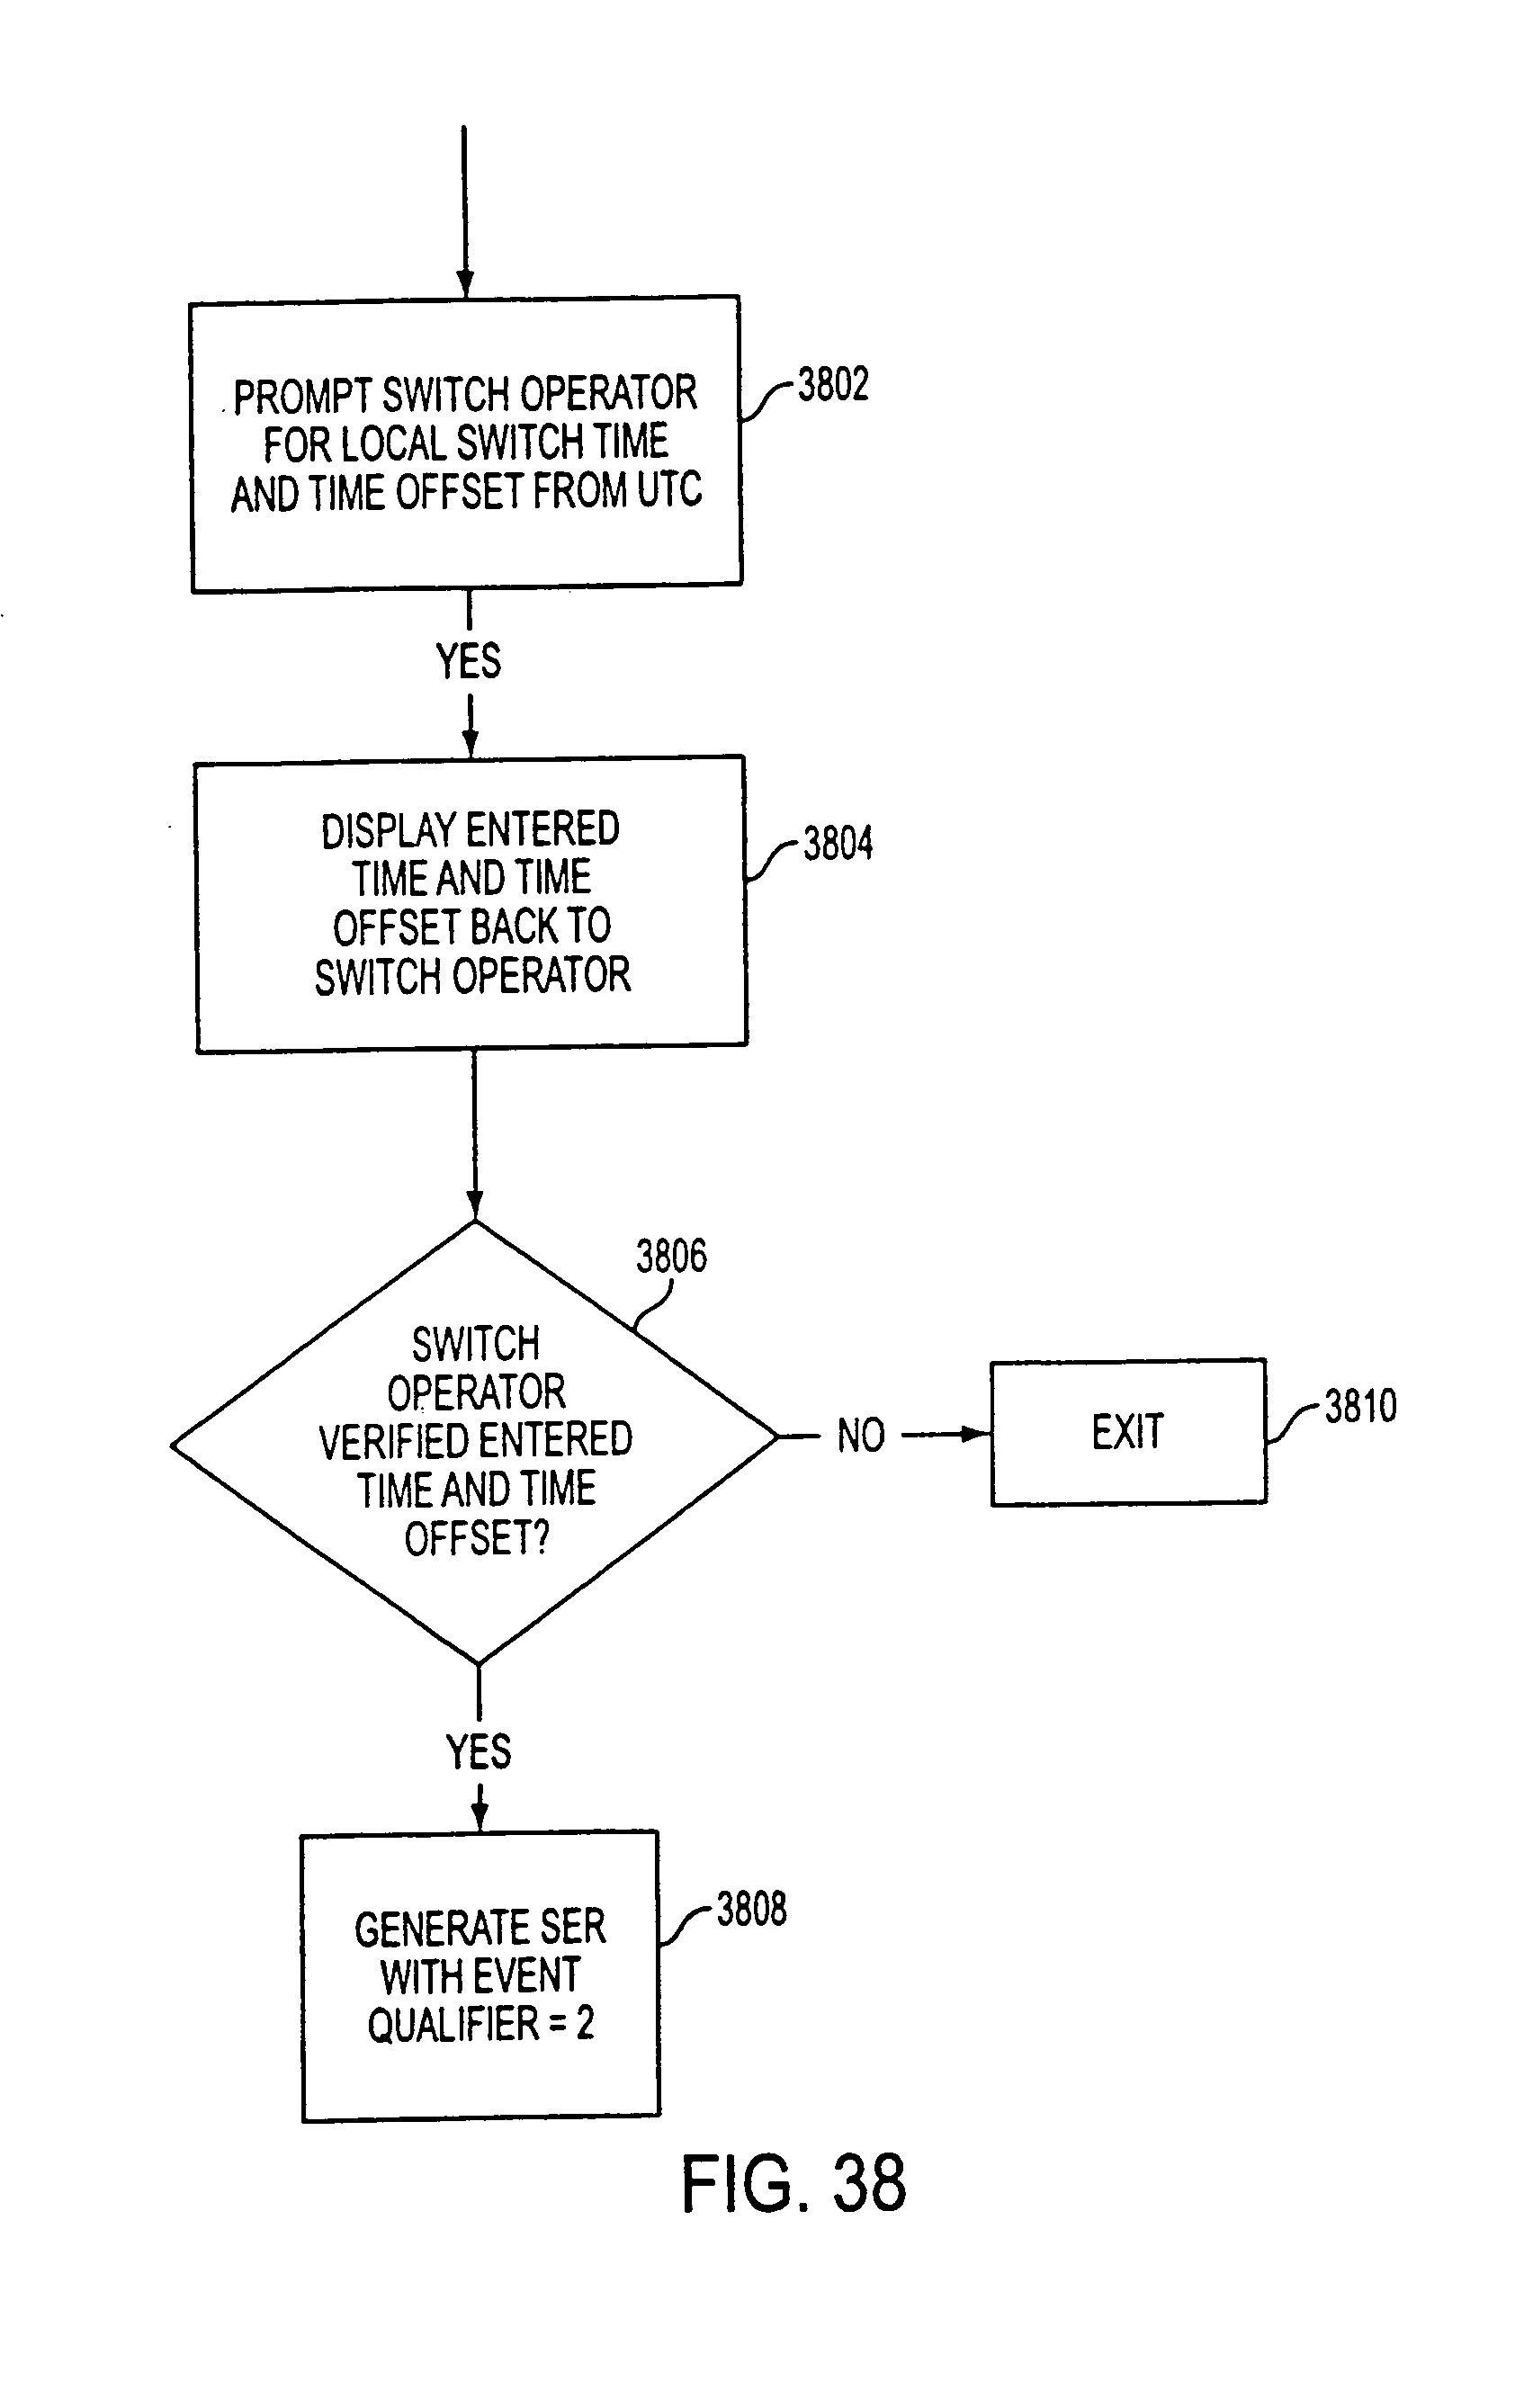 Patent Us 7124101 B1 Diagram Moreover Dip Switch Settings In Addition Cat 5 Crossover Cable Images